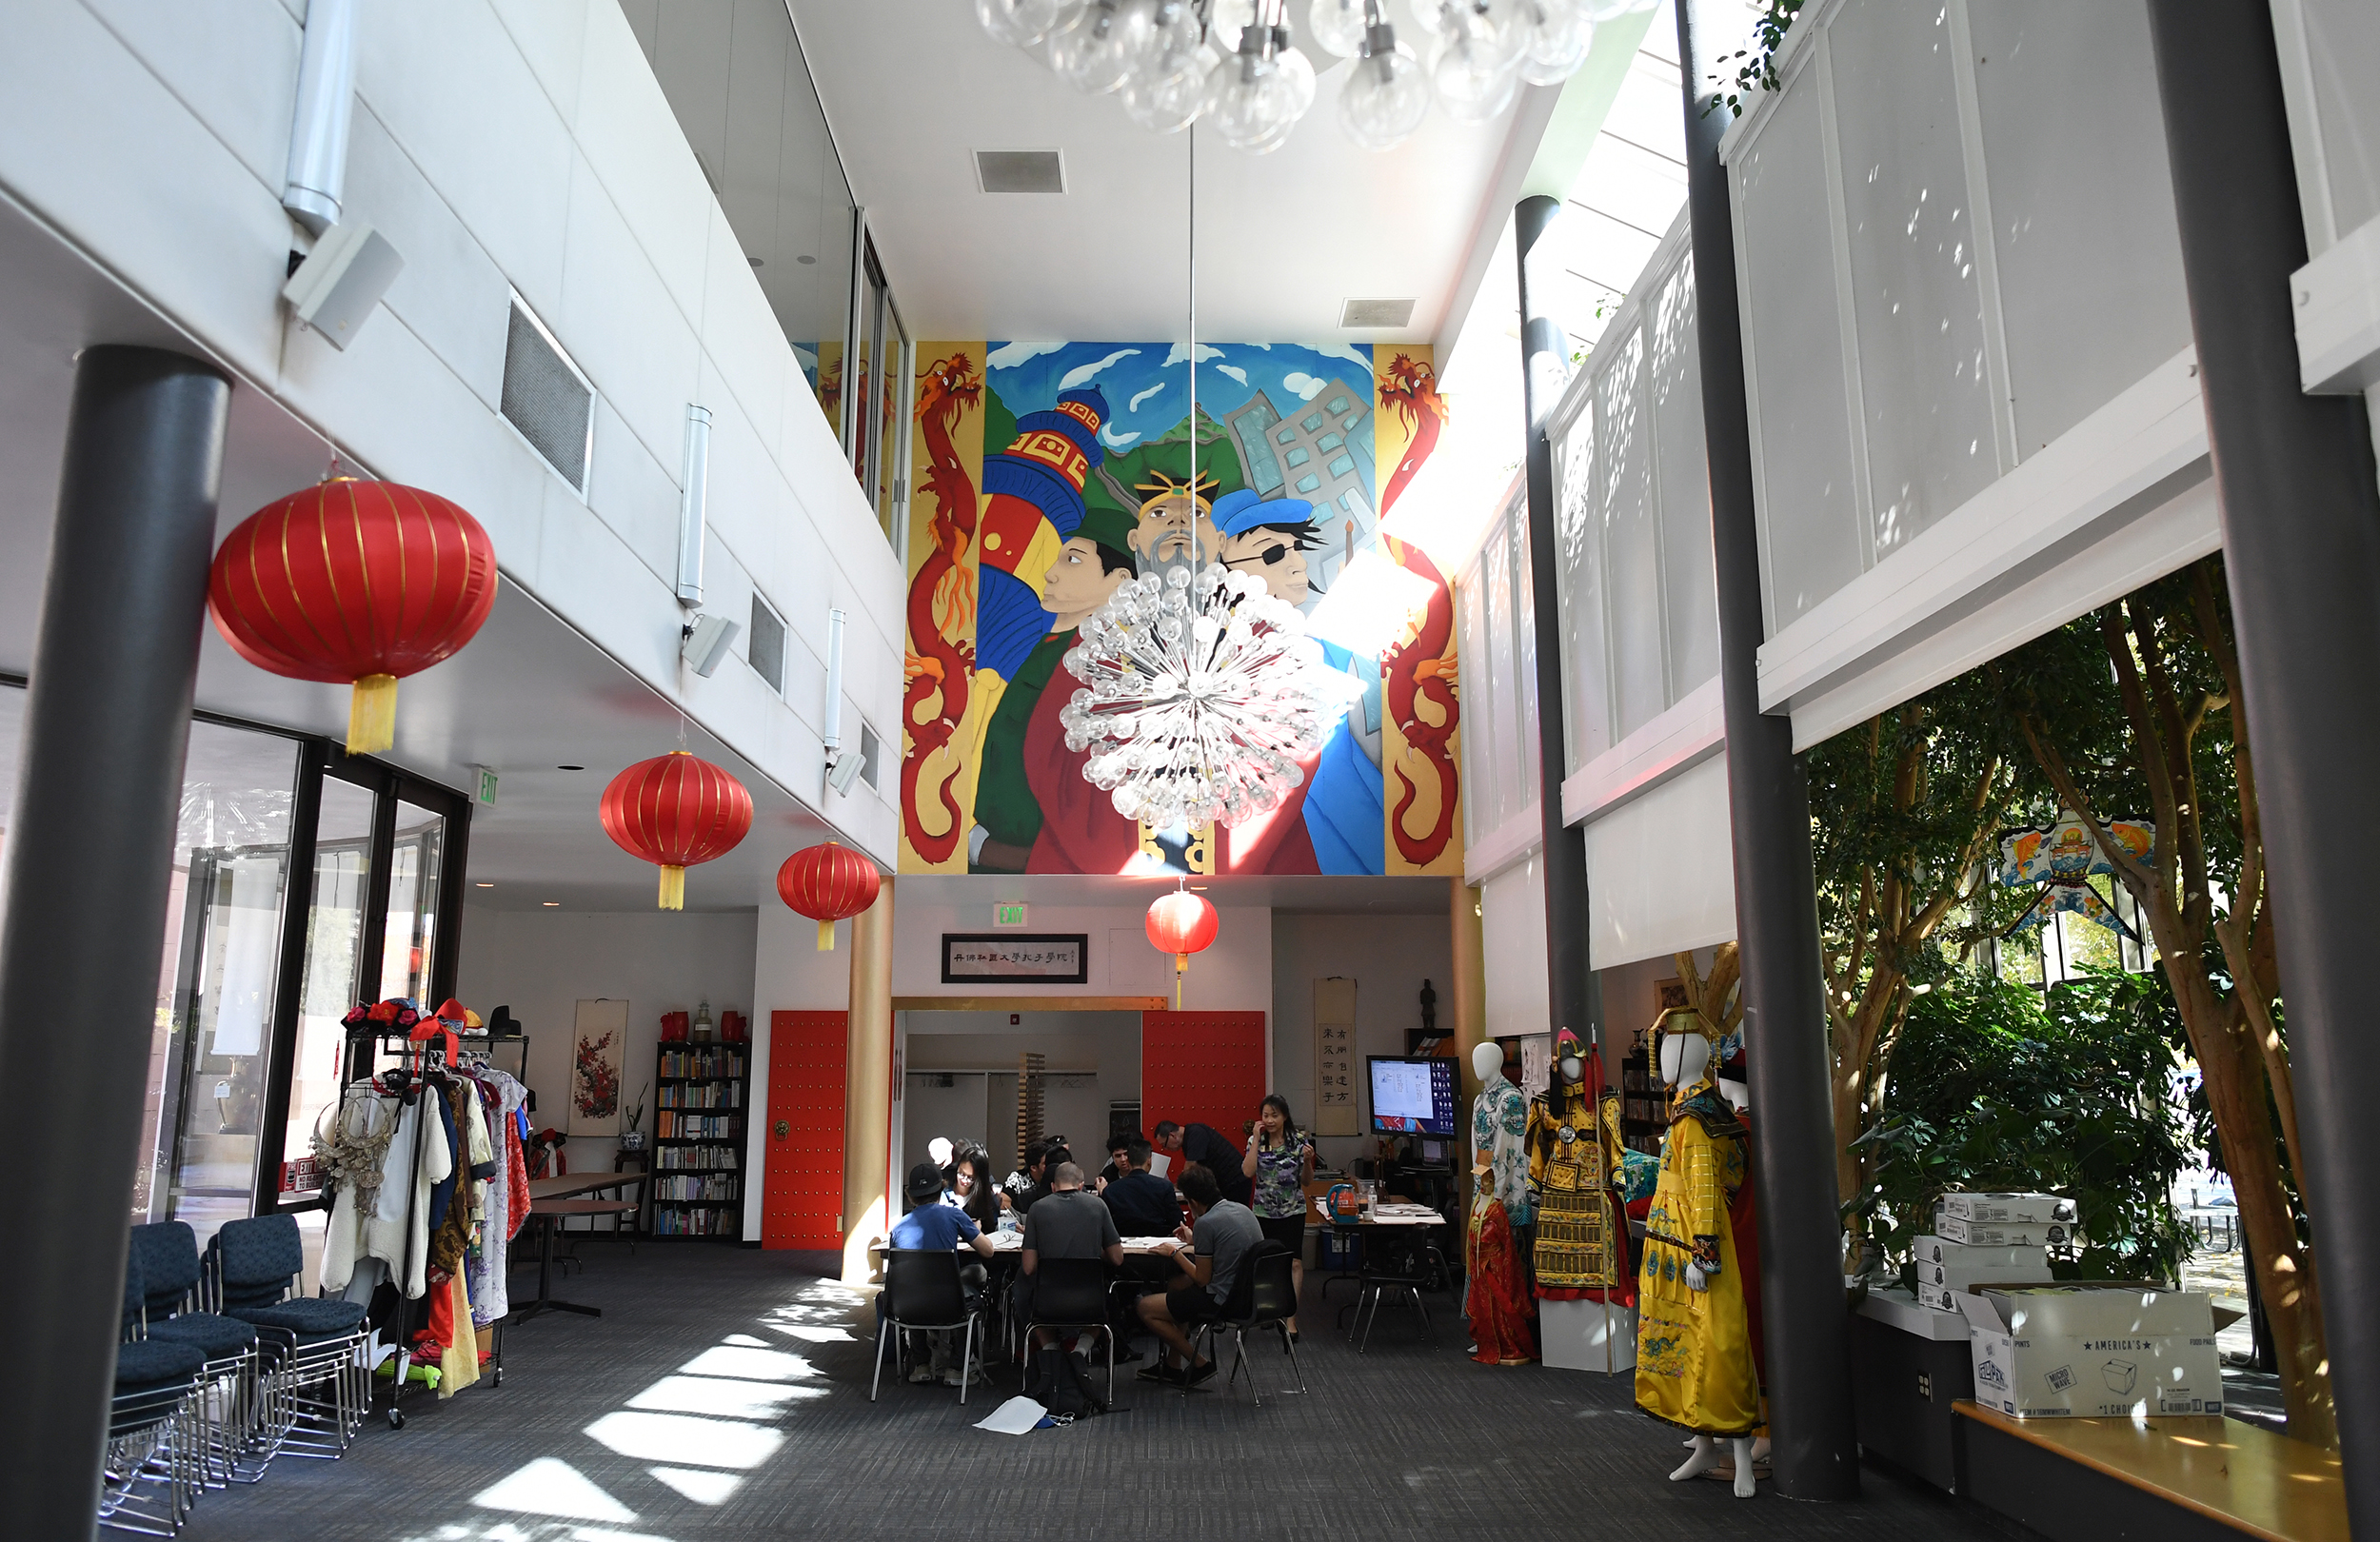 Do-Chinese-cultural-programs-at-U.S.-colleges-promote-propaganda?-Debate-rages